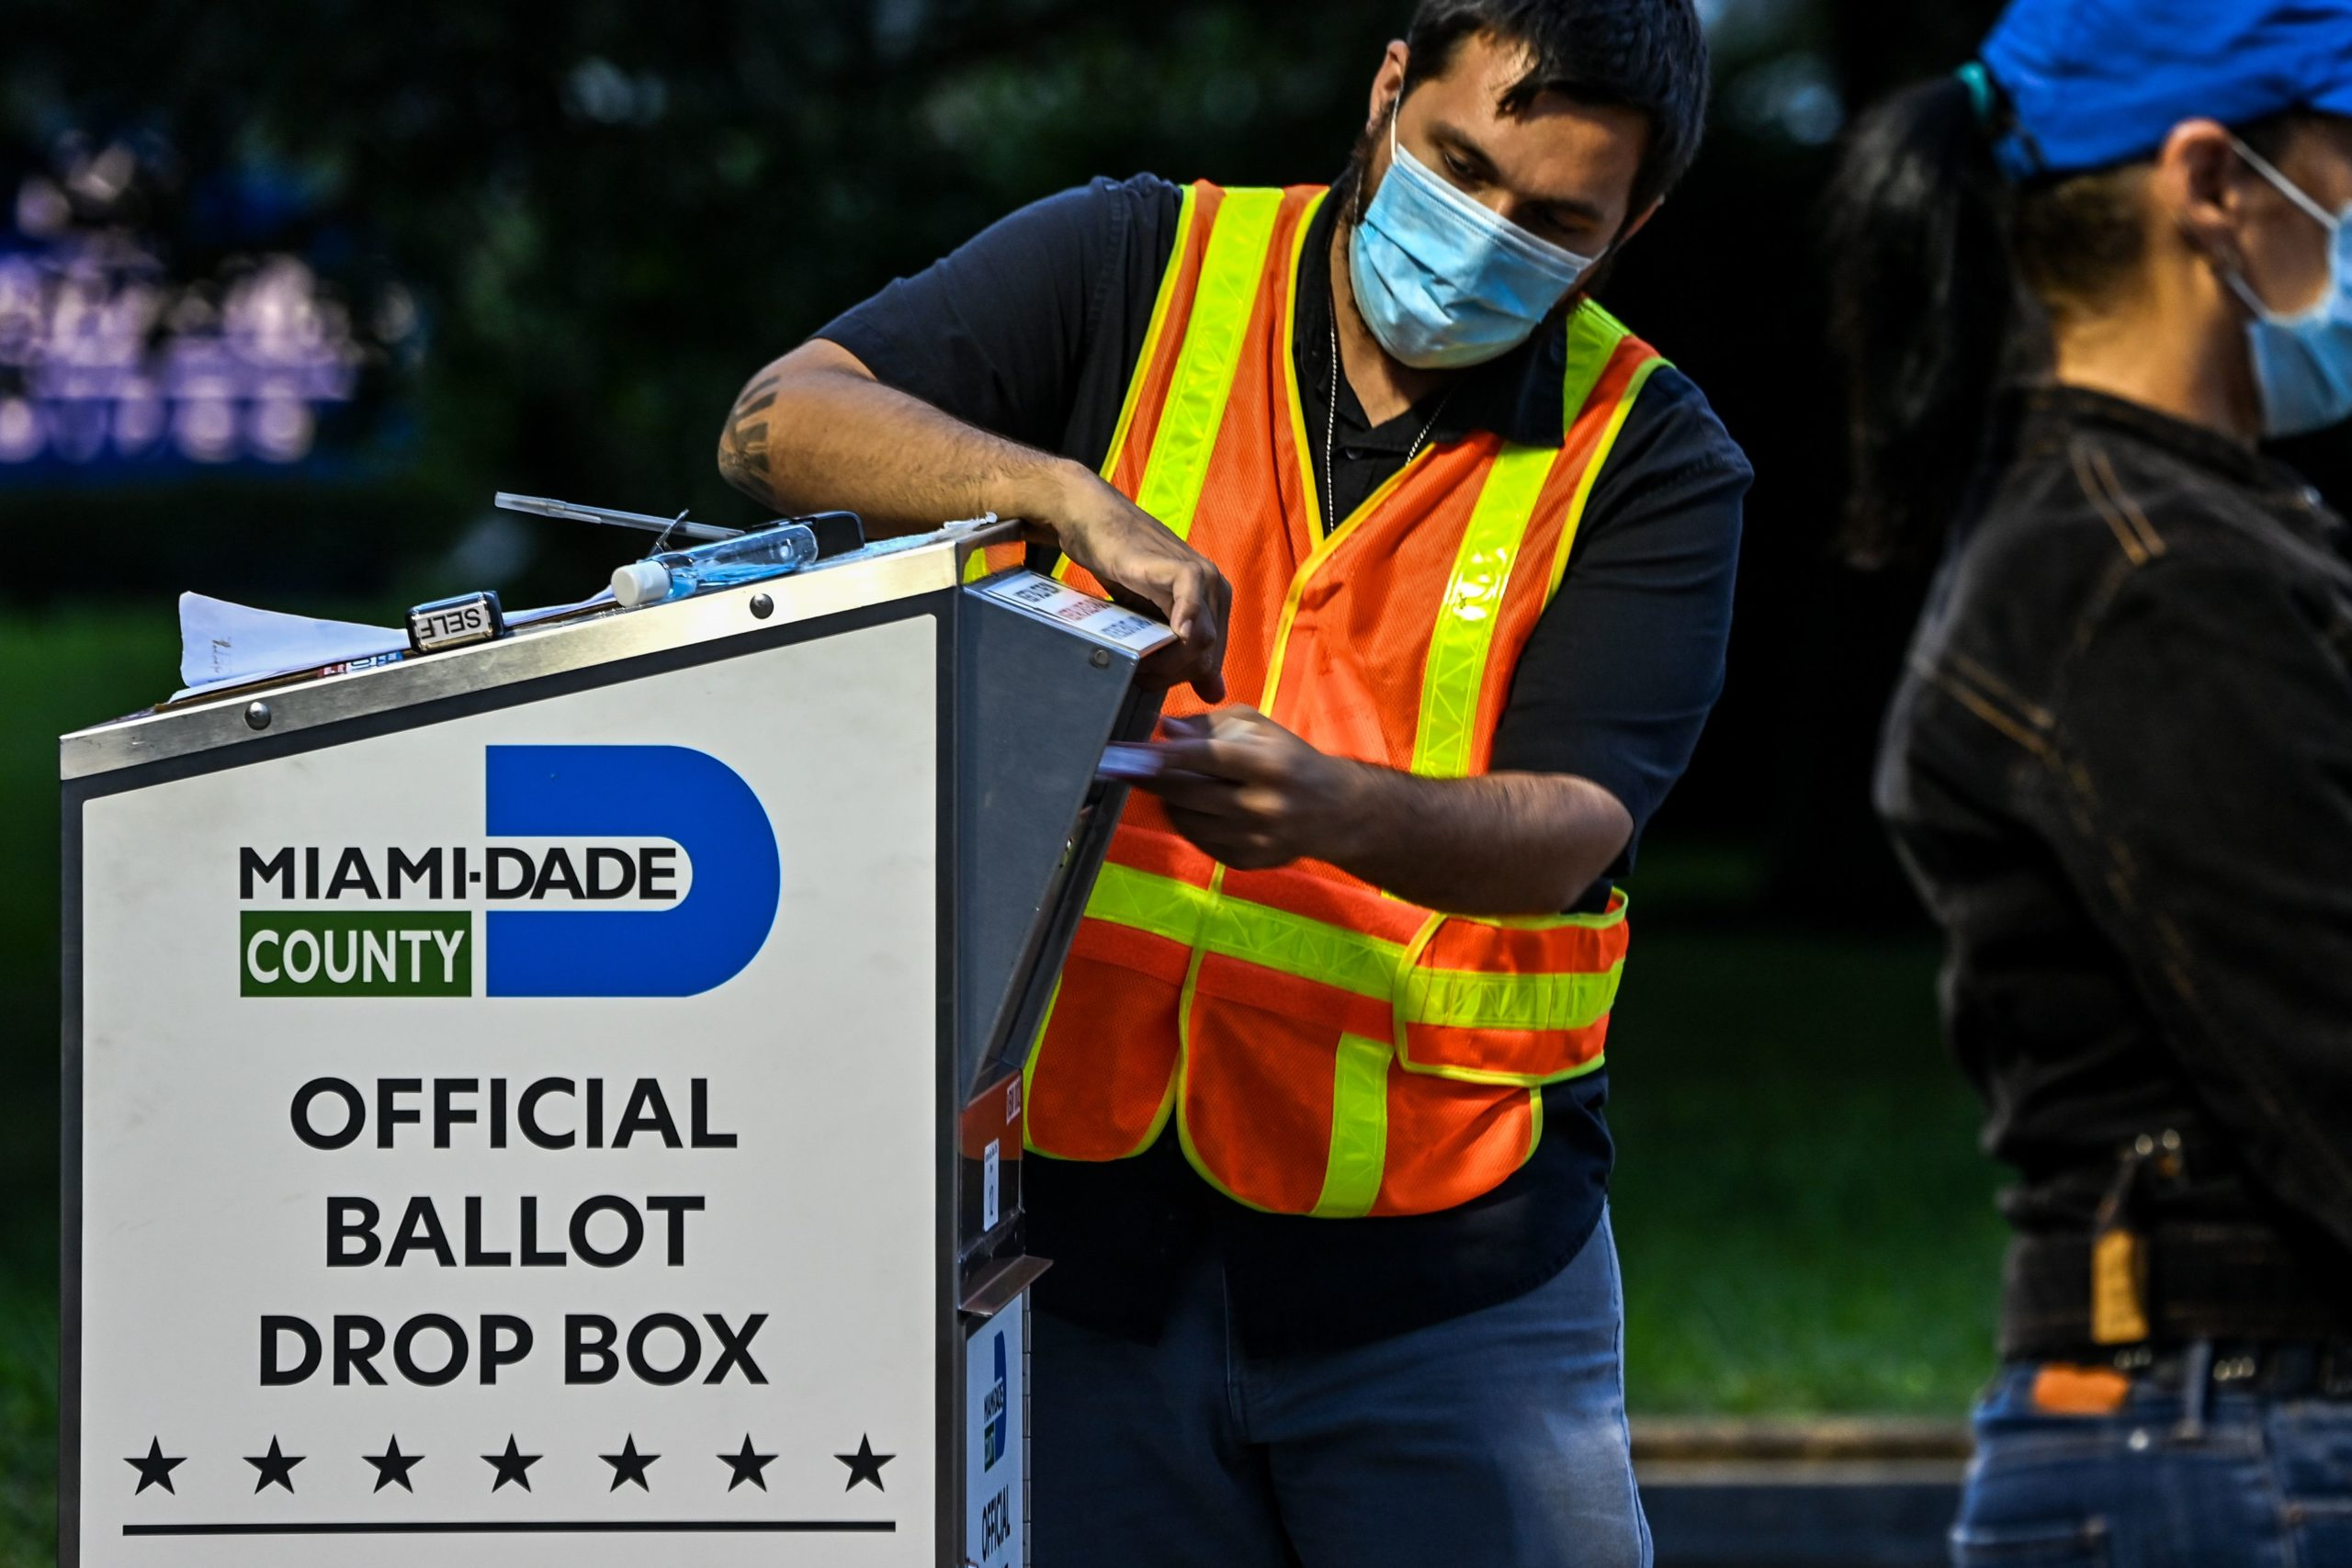 A poll worker helps a voter as she drops off her mail-in ballot at an official Miami-Dade County drive-thru ballot drop box in Miami, Florida on Nov. 3. (Chandan Khanna/AFP via Getty Images)